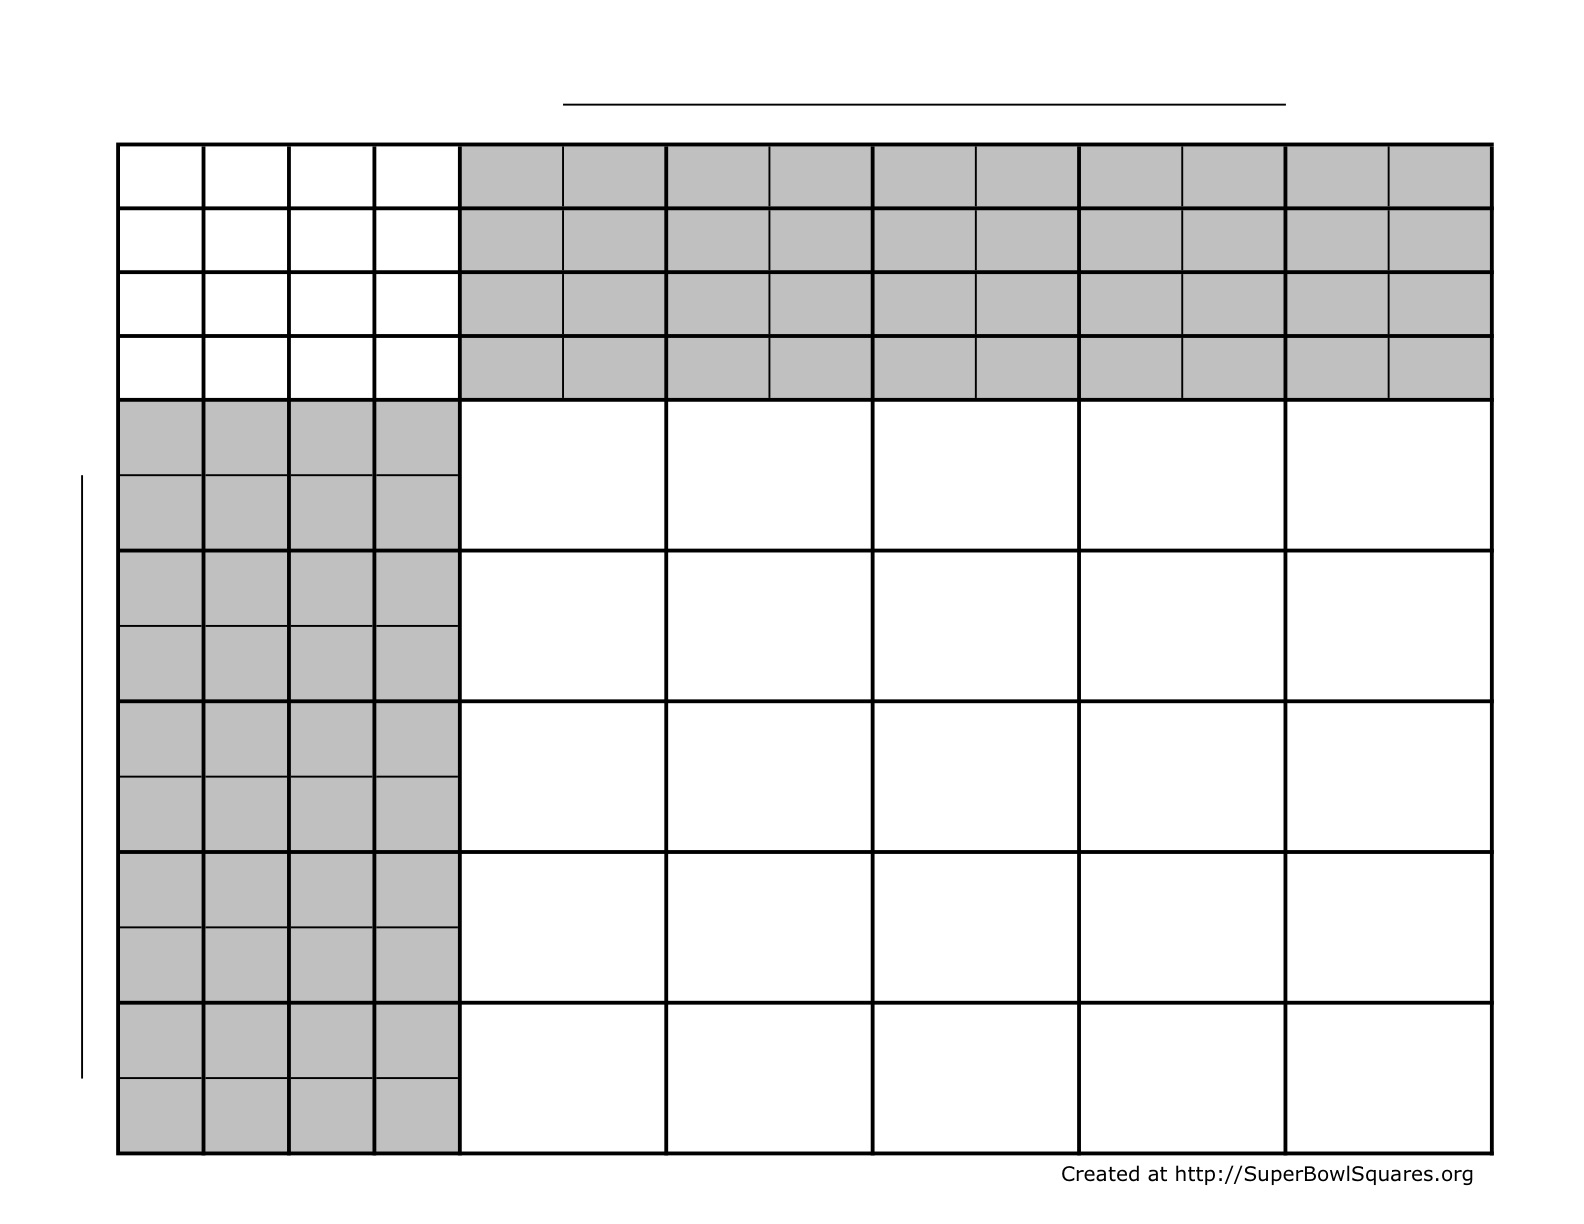 photograph about Printable Football Squares titled Printable Soccer Squares Sheets